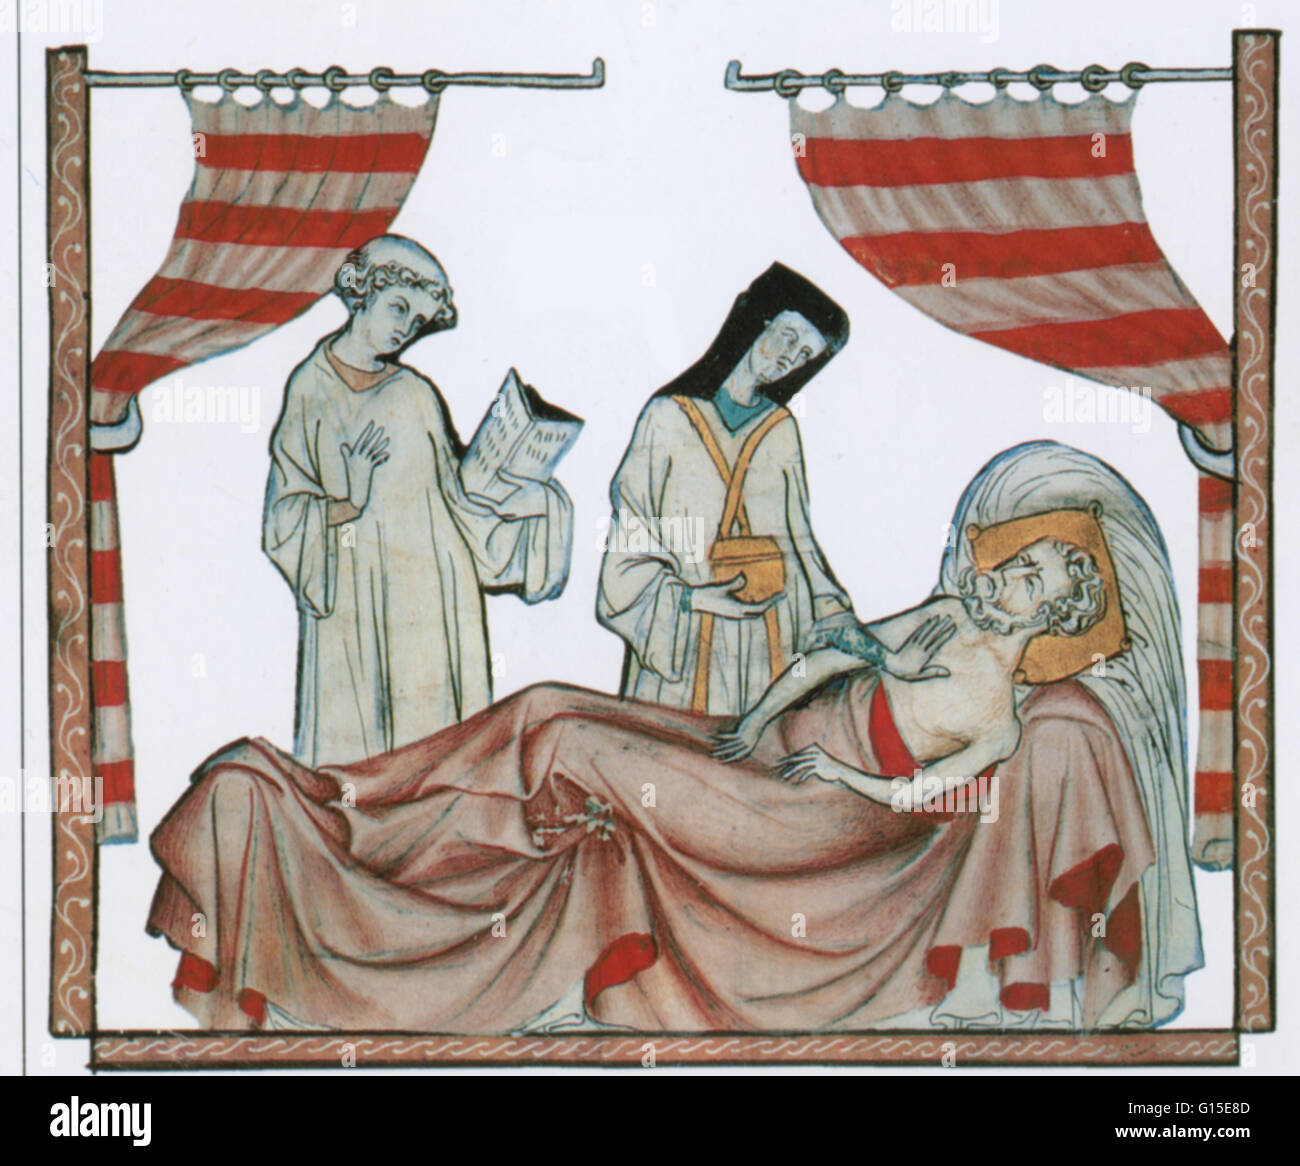 Priest anoints a dying man with holy oil. People in the middle ages believed it was important to die properly. They - Stock Image